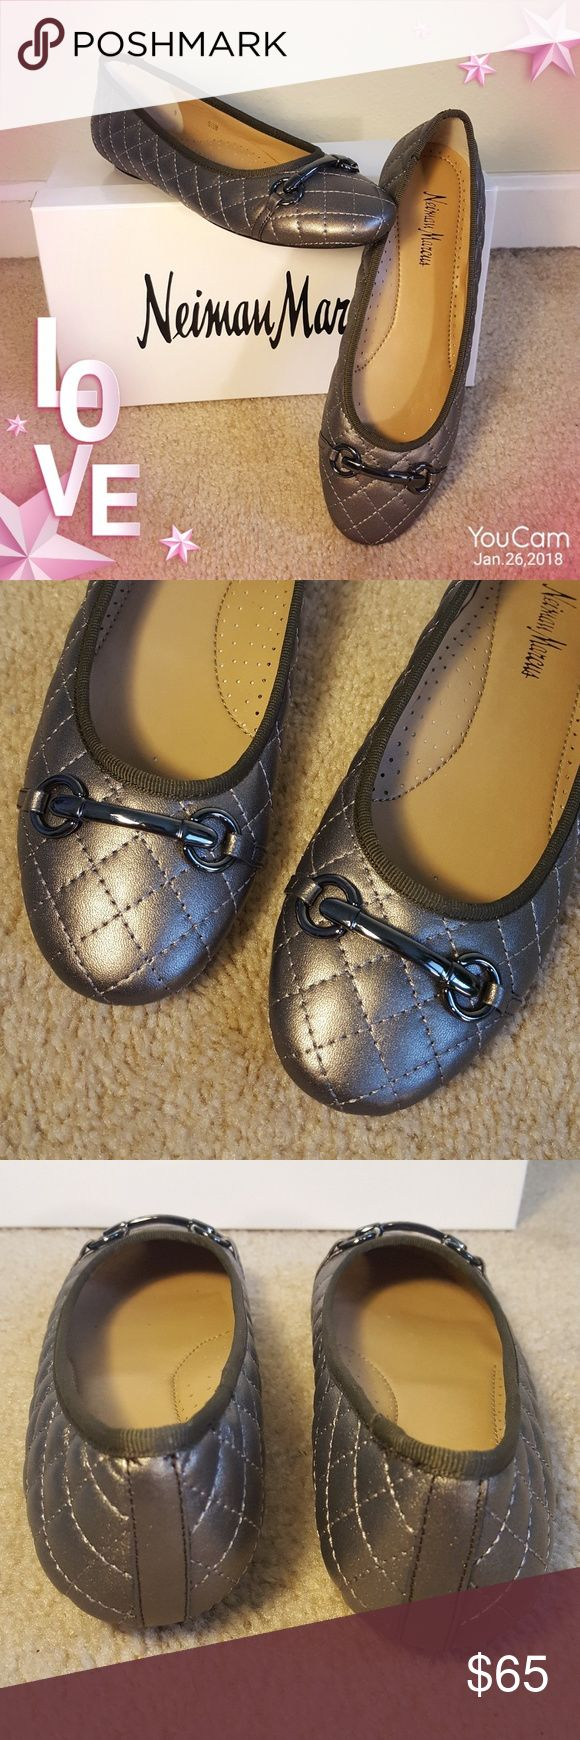 NIB! Suzy Pewter Quilted Flats Gorgeous and Comfortable!!! Size runs true! Neiman Marcus Shoes Flats & Loafers